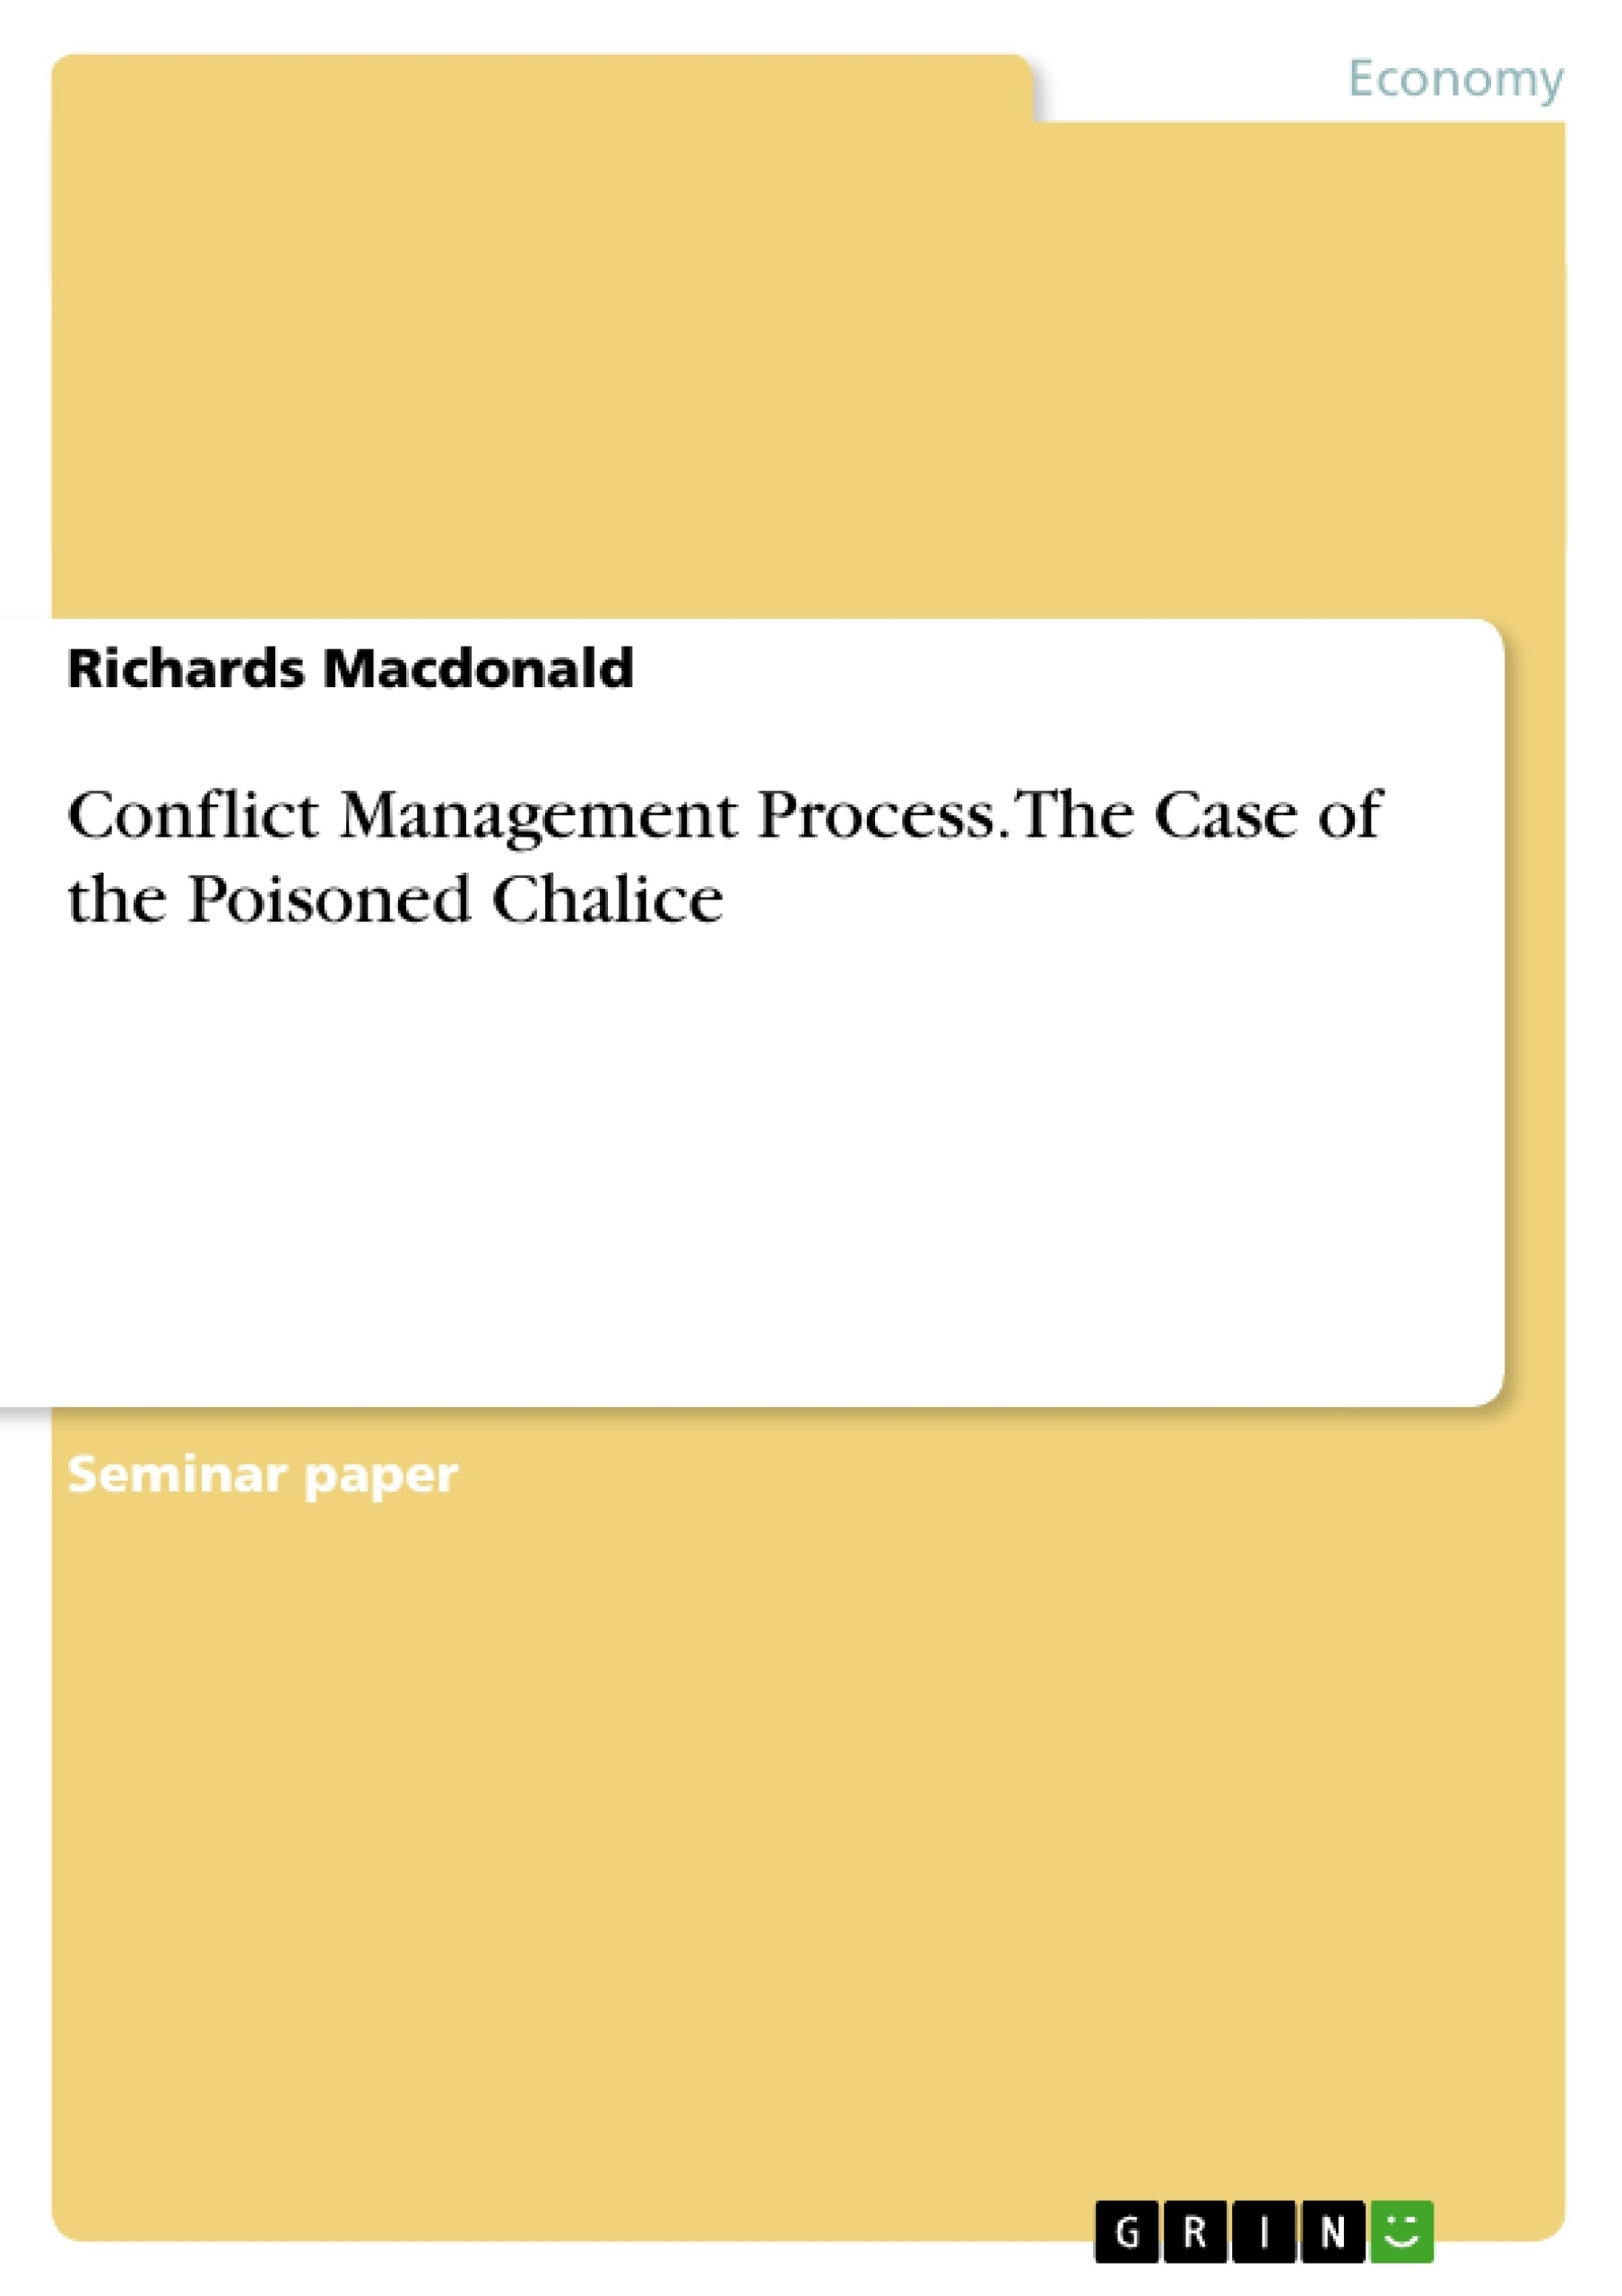 Title: Conflict Management Process. The Case of the Poisoned Chalice